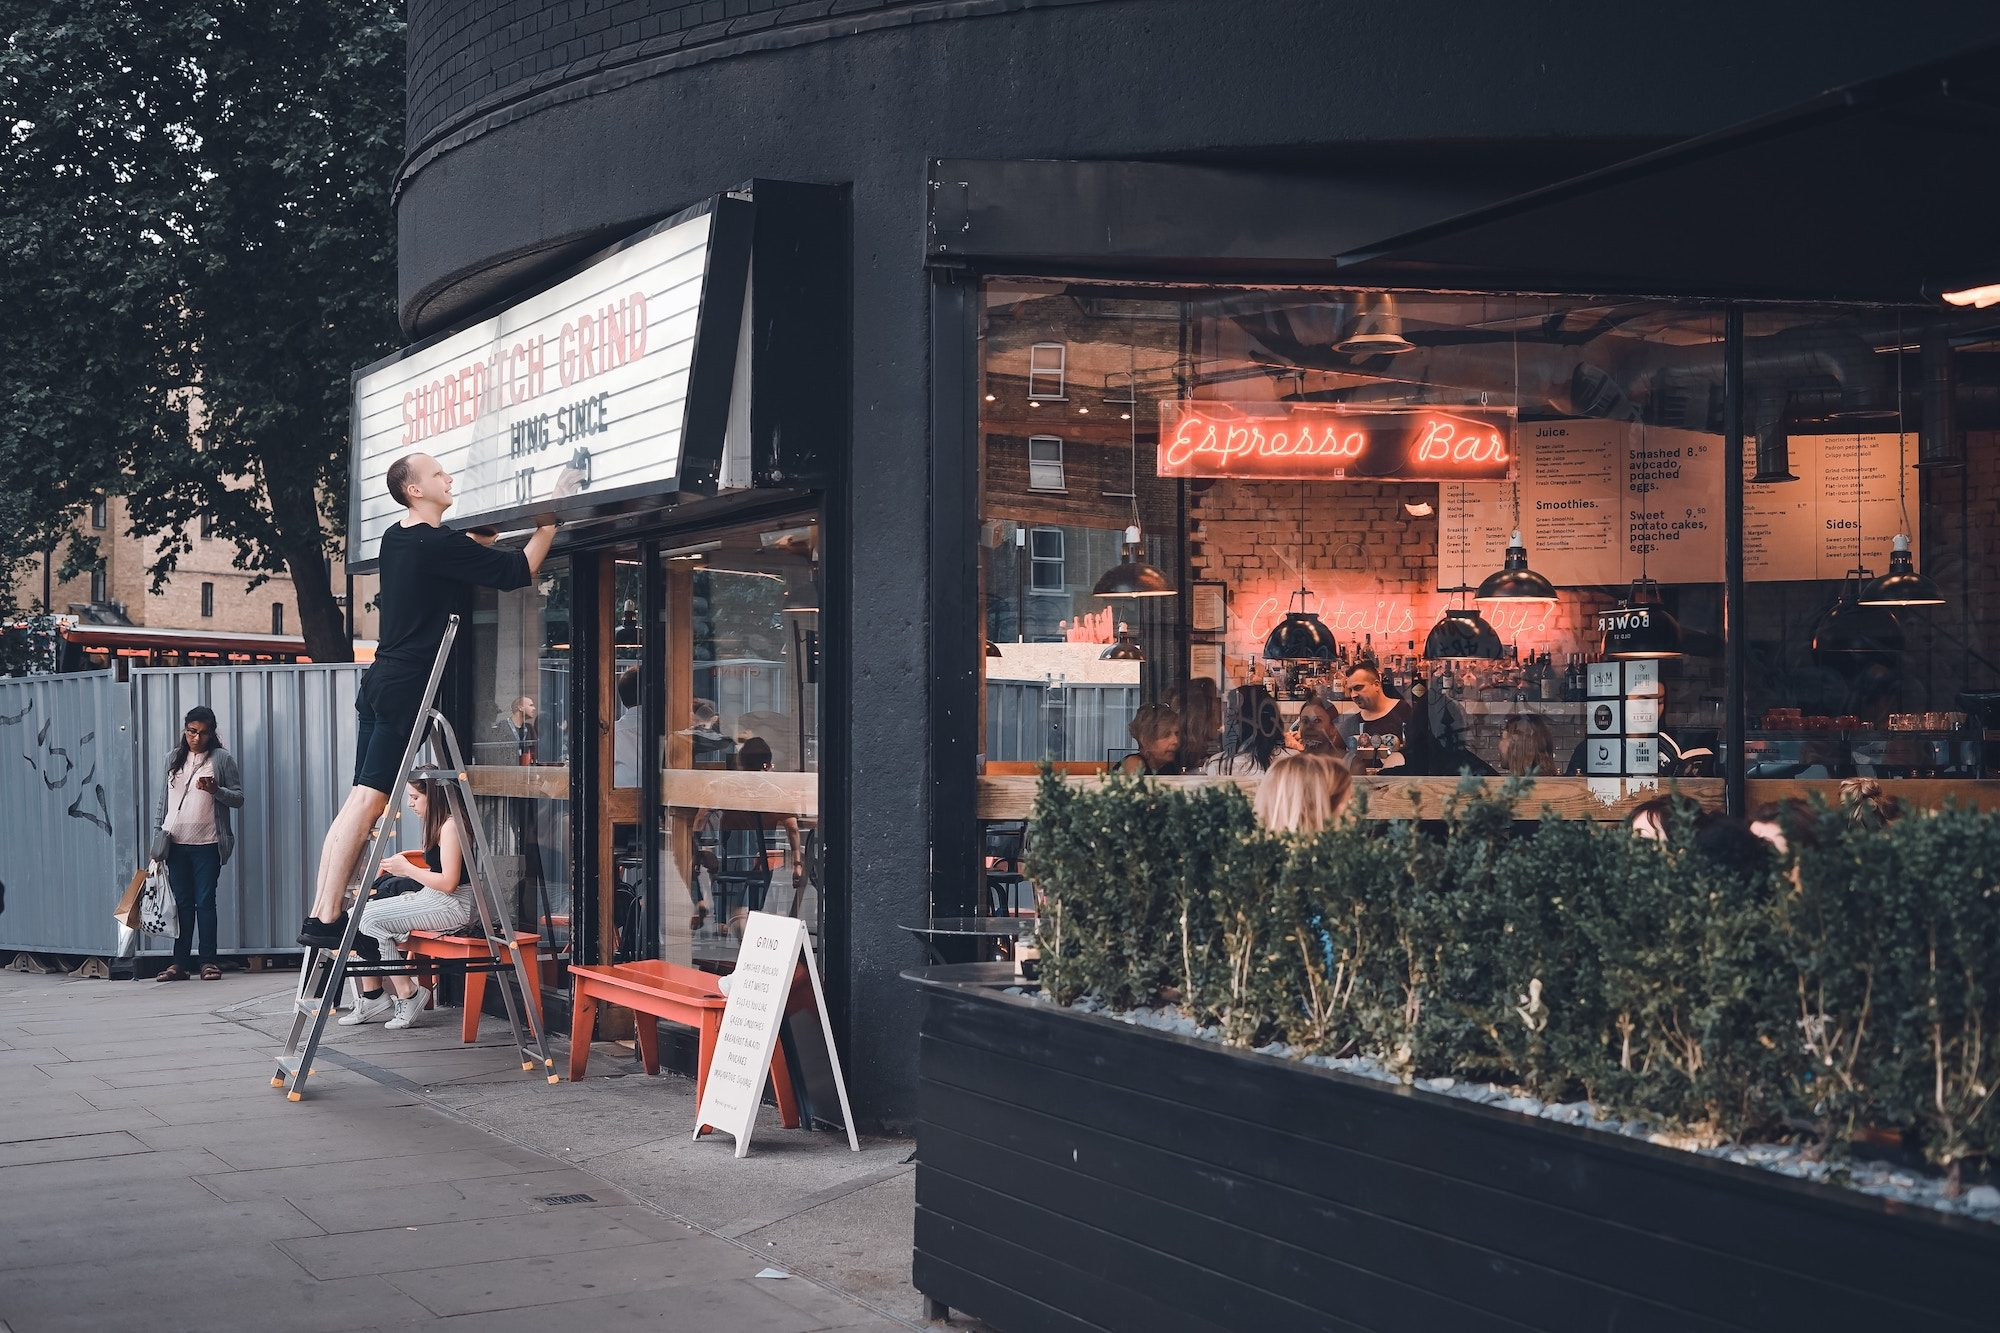 Kingdom of cool, Shoreditch is the place to go to see and be seen in its trendy restaurants like the Shoreditch Grind.